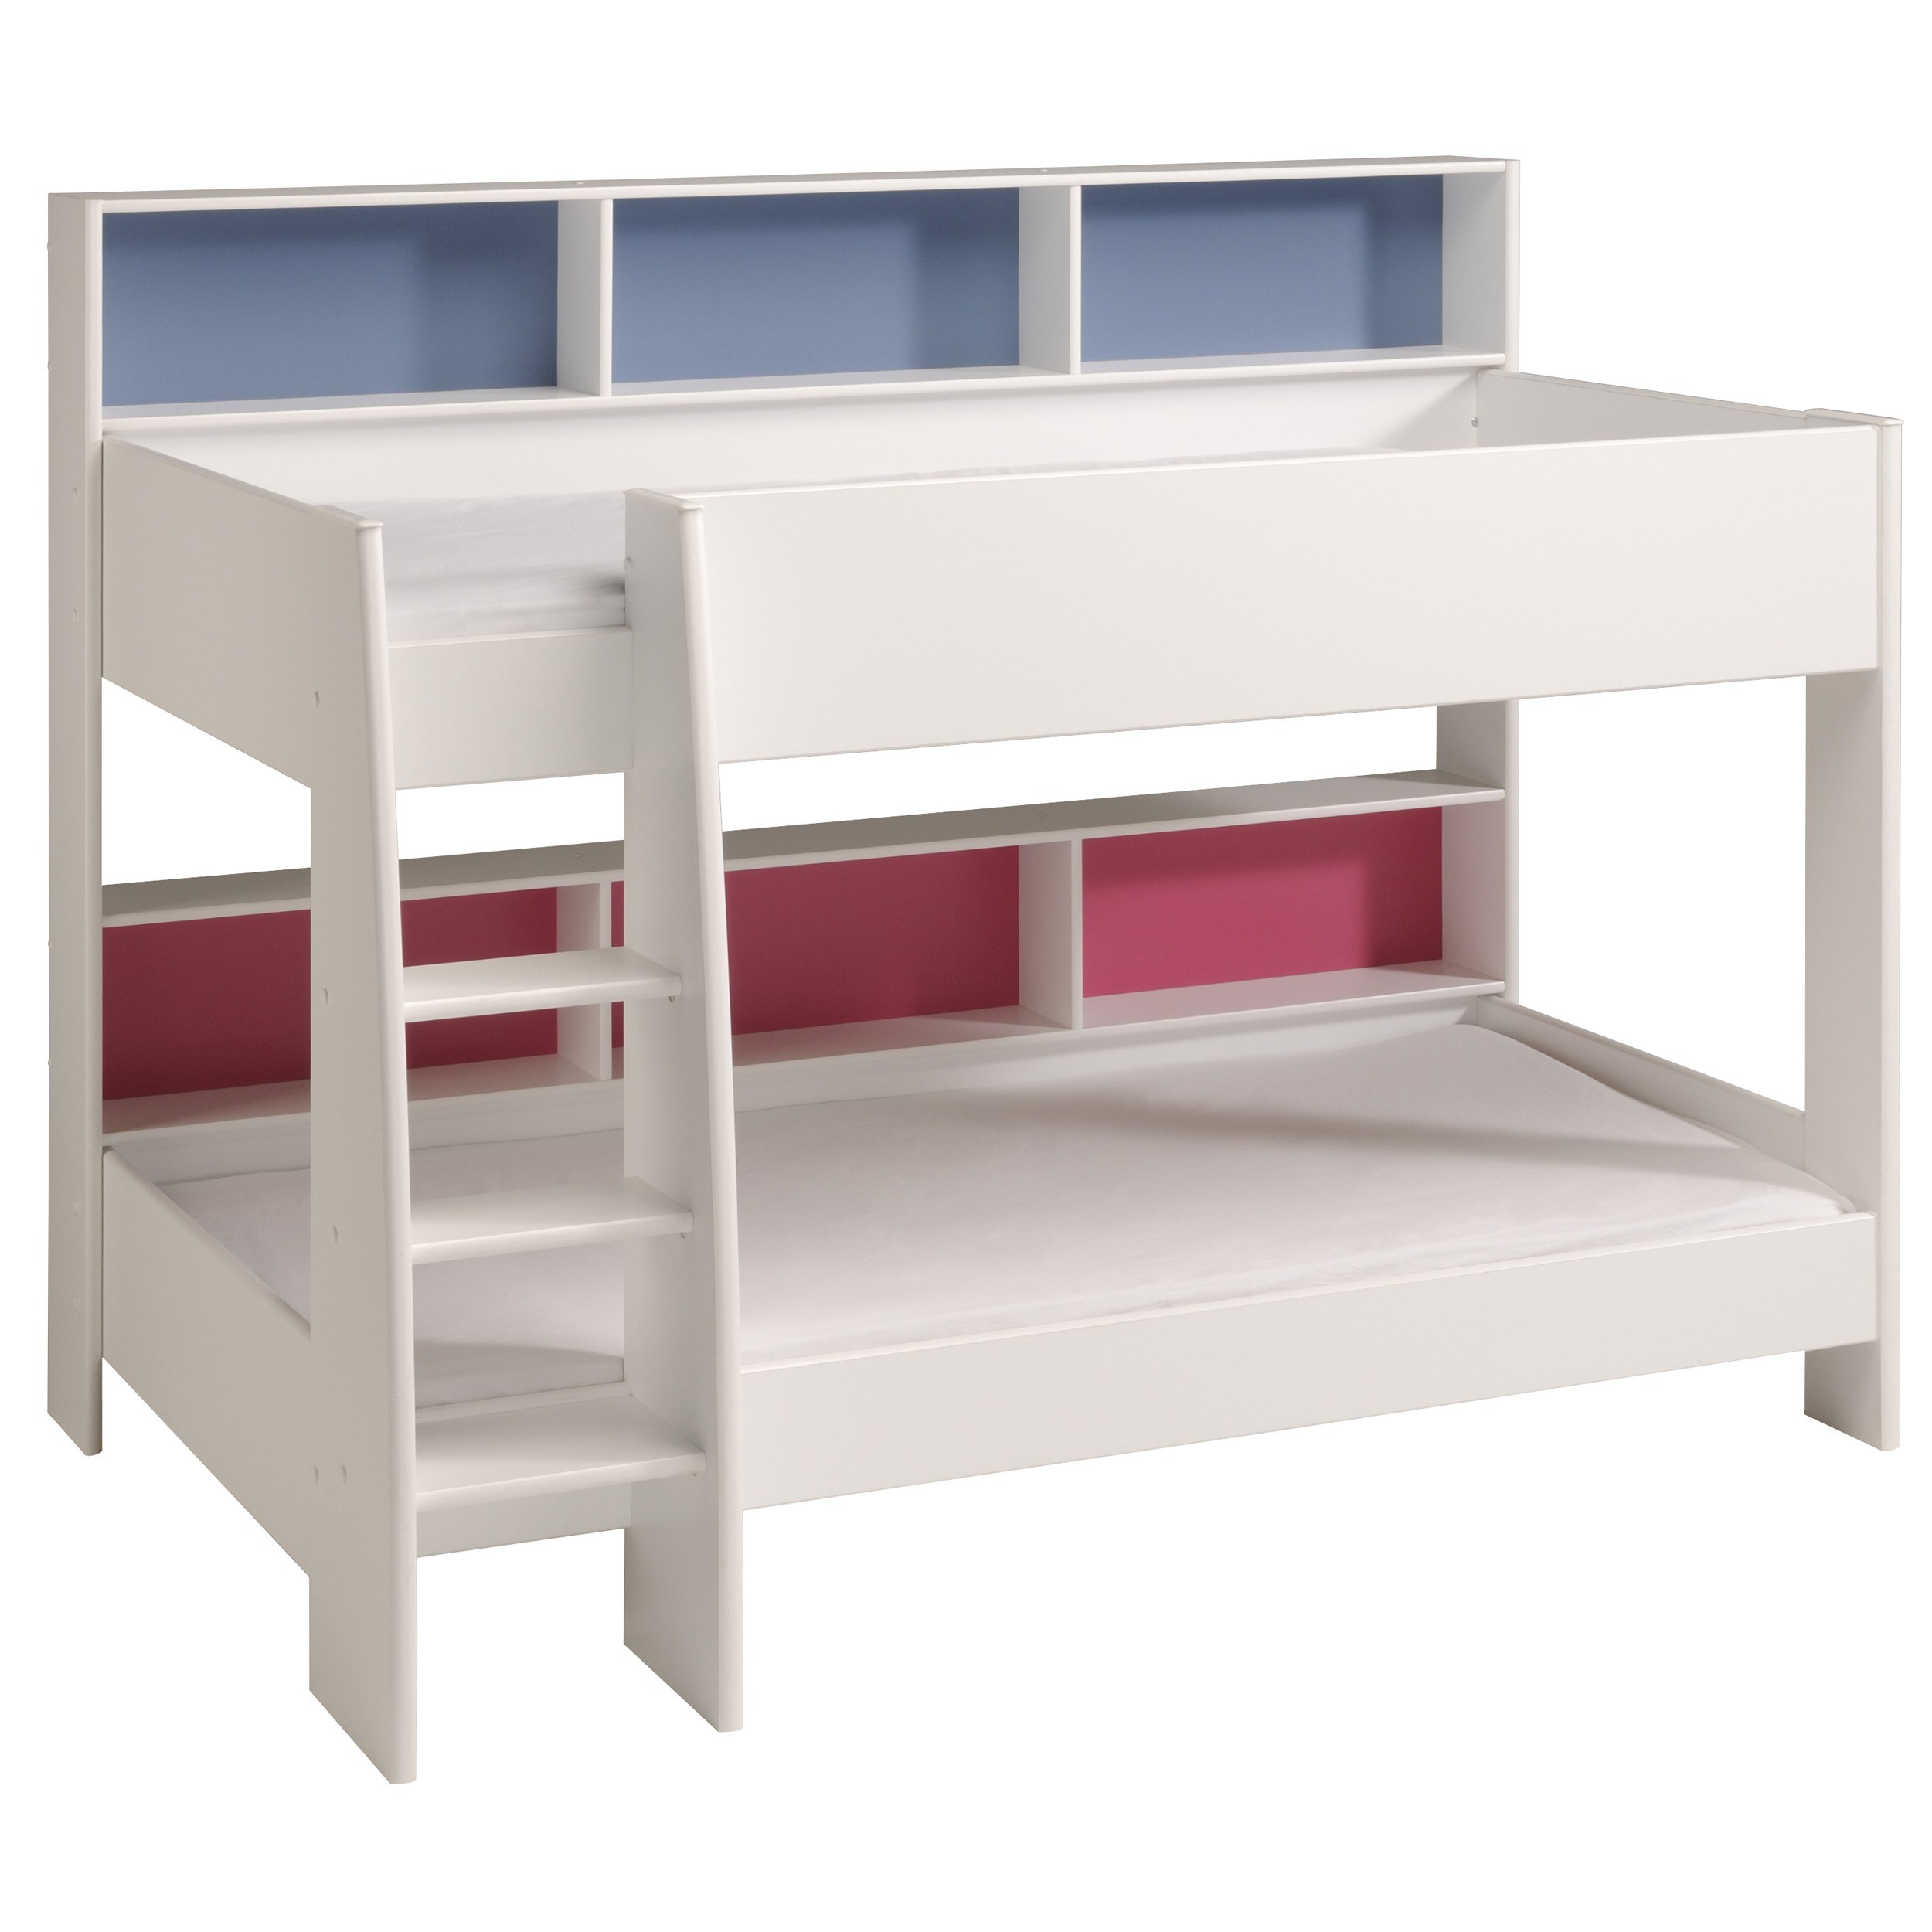 Kids Bunk Bed Solid Wood Bed Buy Customized Wooden Bunk Bed Toddler Bunk Beds Bunk Bed With Shelves Product On Alibaba Com